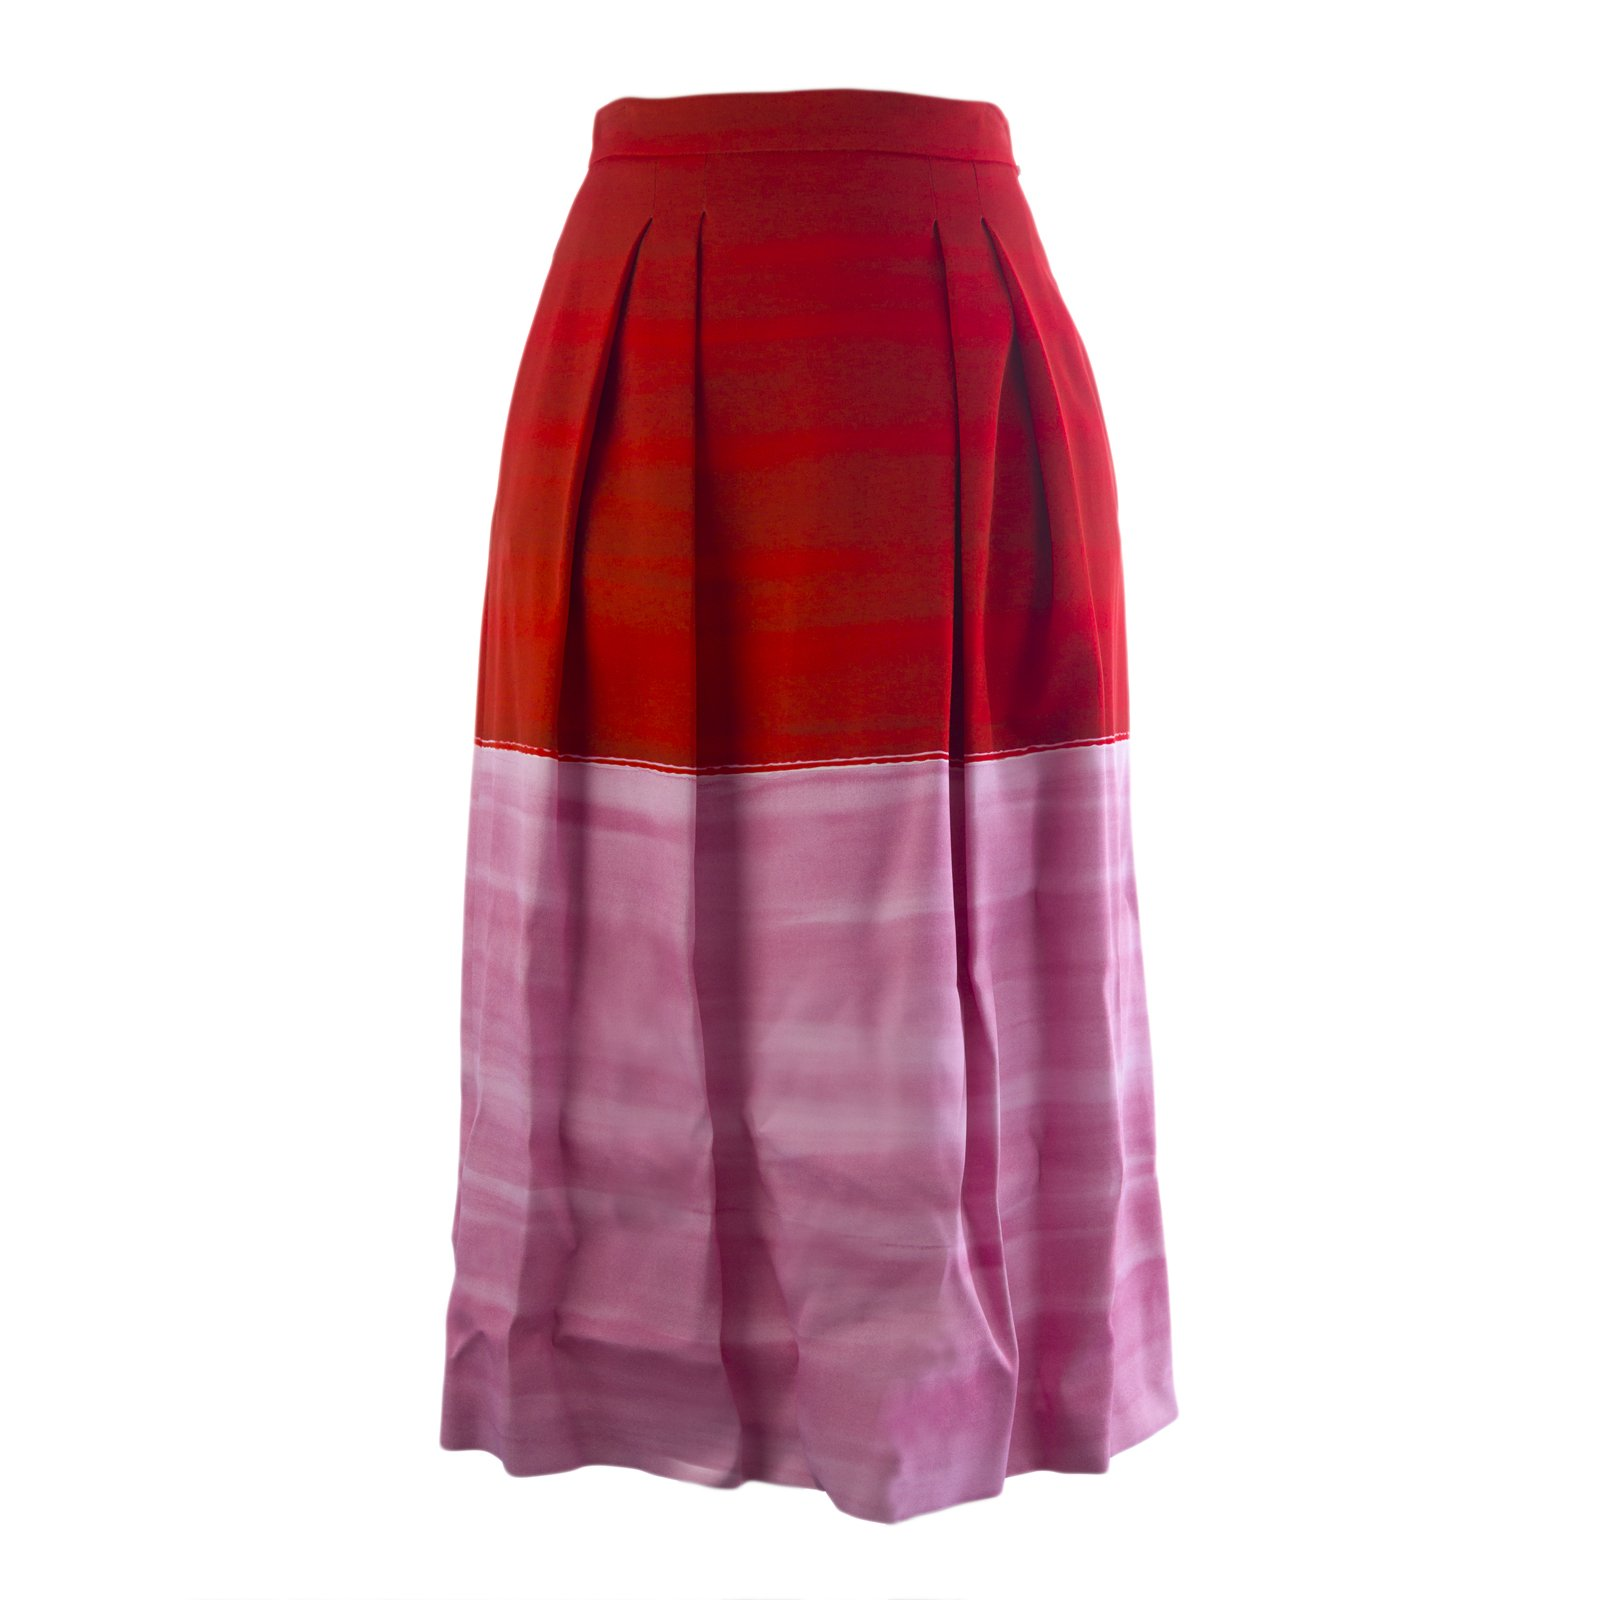 Max Mara Sportmax Women's Vibo Pleated Colorblock Half Skirt Sz 8 Red